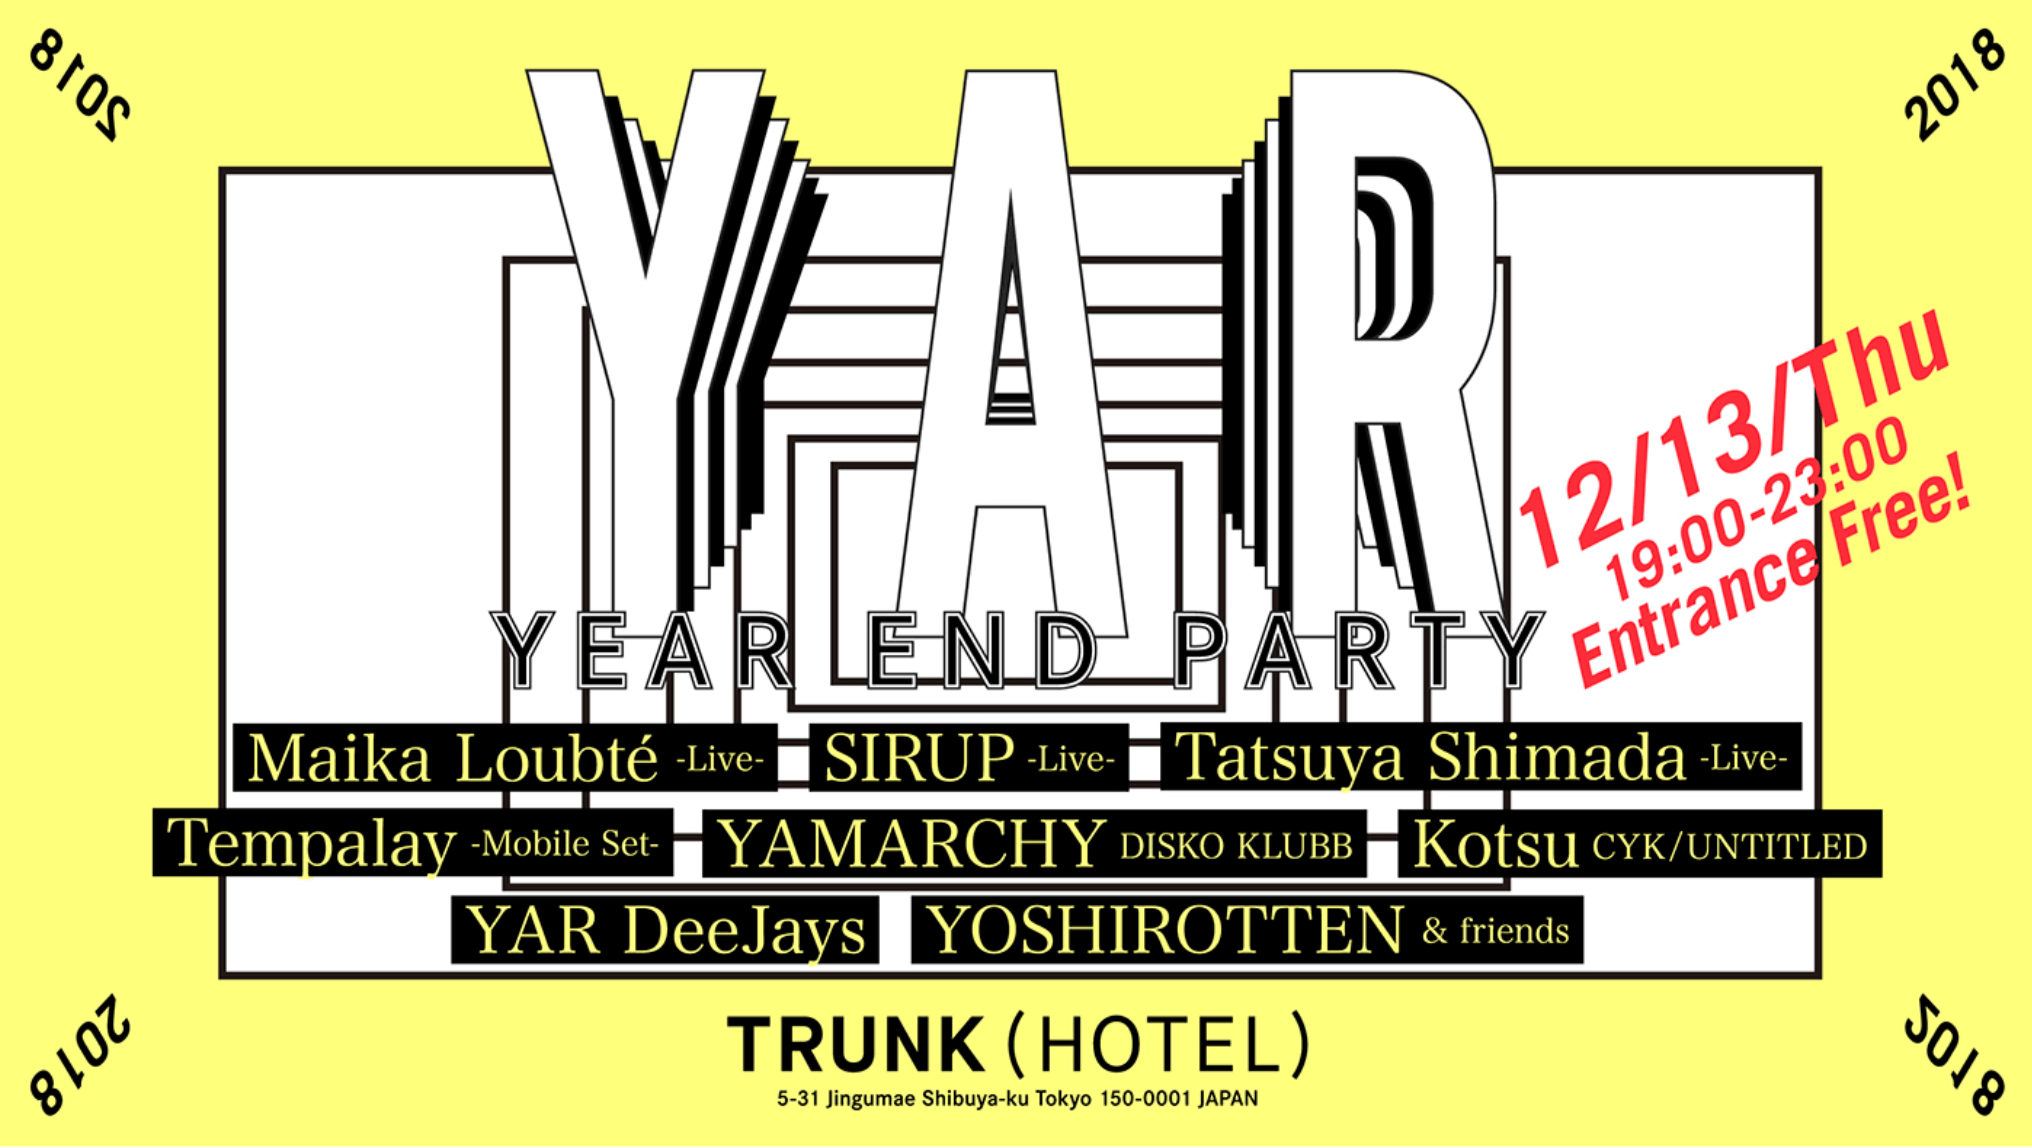 YAR YEAR END PARTY